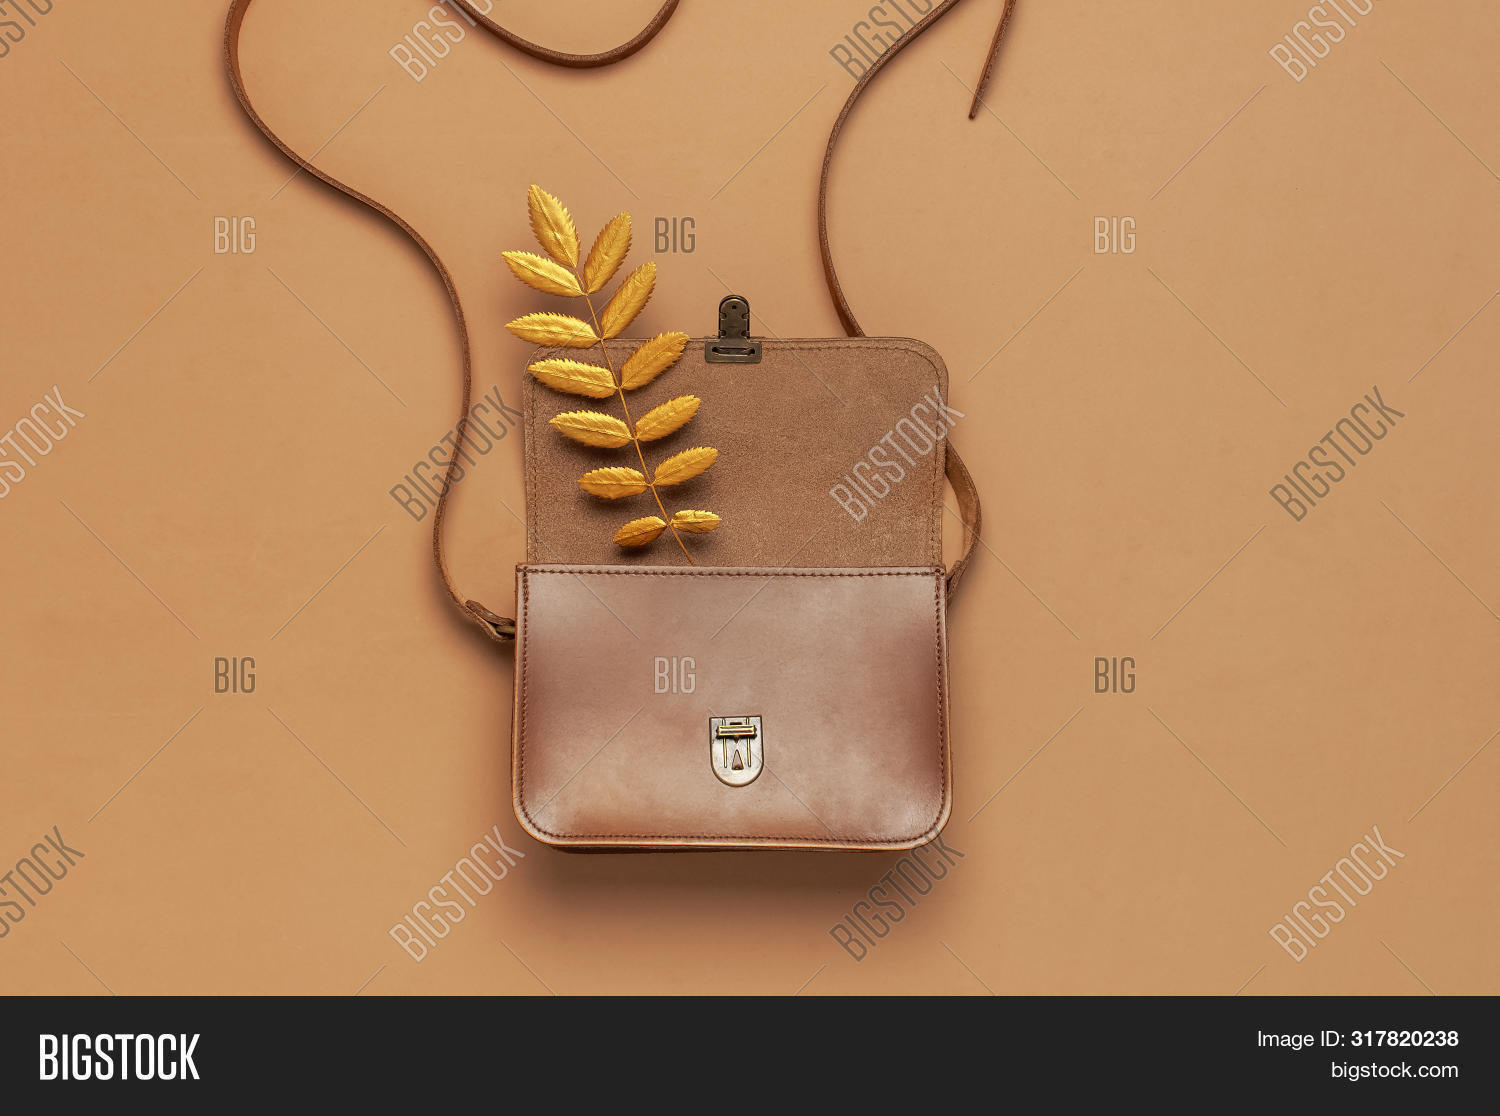 accessory,autumn,background,bag,beauty,big,bright,brown,buckle,casual,color,decoration,design,elegance,fall,fashion,fashionable,female,feminine,glamour,gold,hand,handbag,handle,lady,leather,leaves,luxury,modern,new,object,pattern,personal,pouch,purse,retail,satchel,shopping,shoulder,single,skin,small,store,strap,style,texture,women,zipper